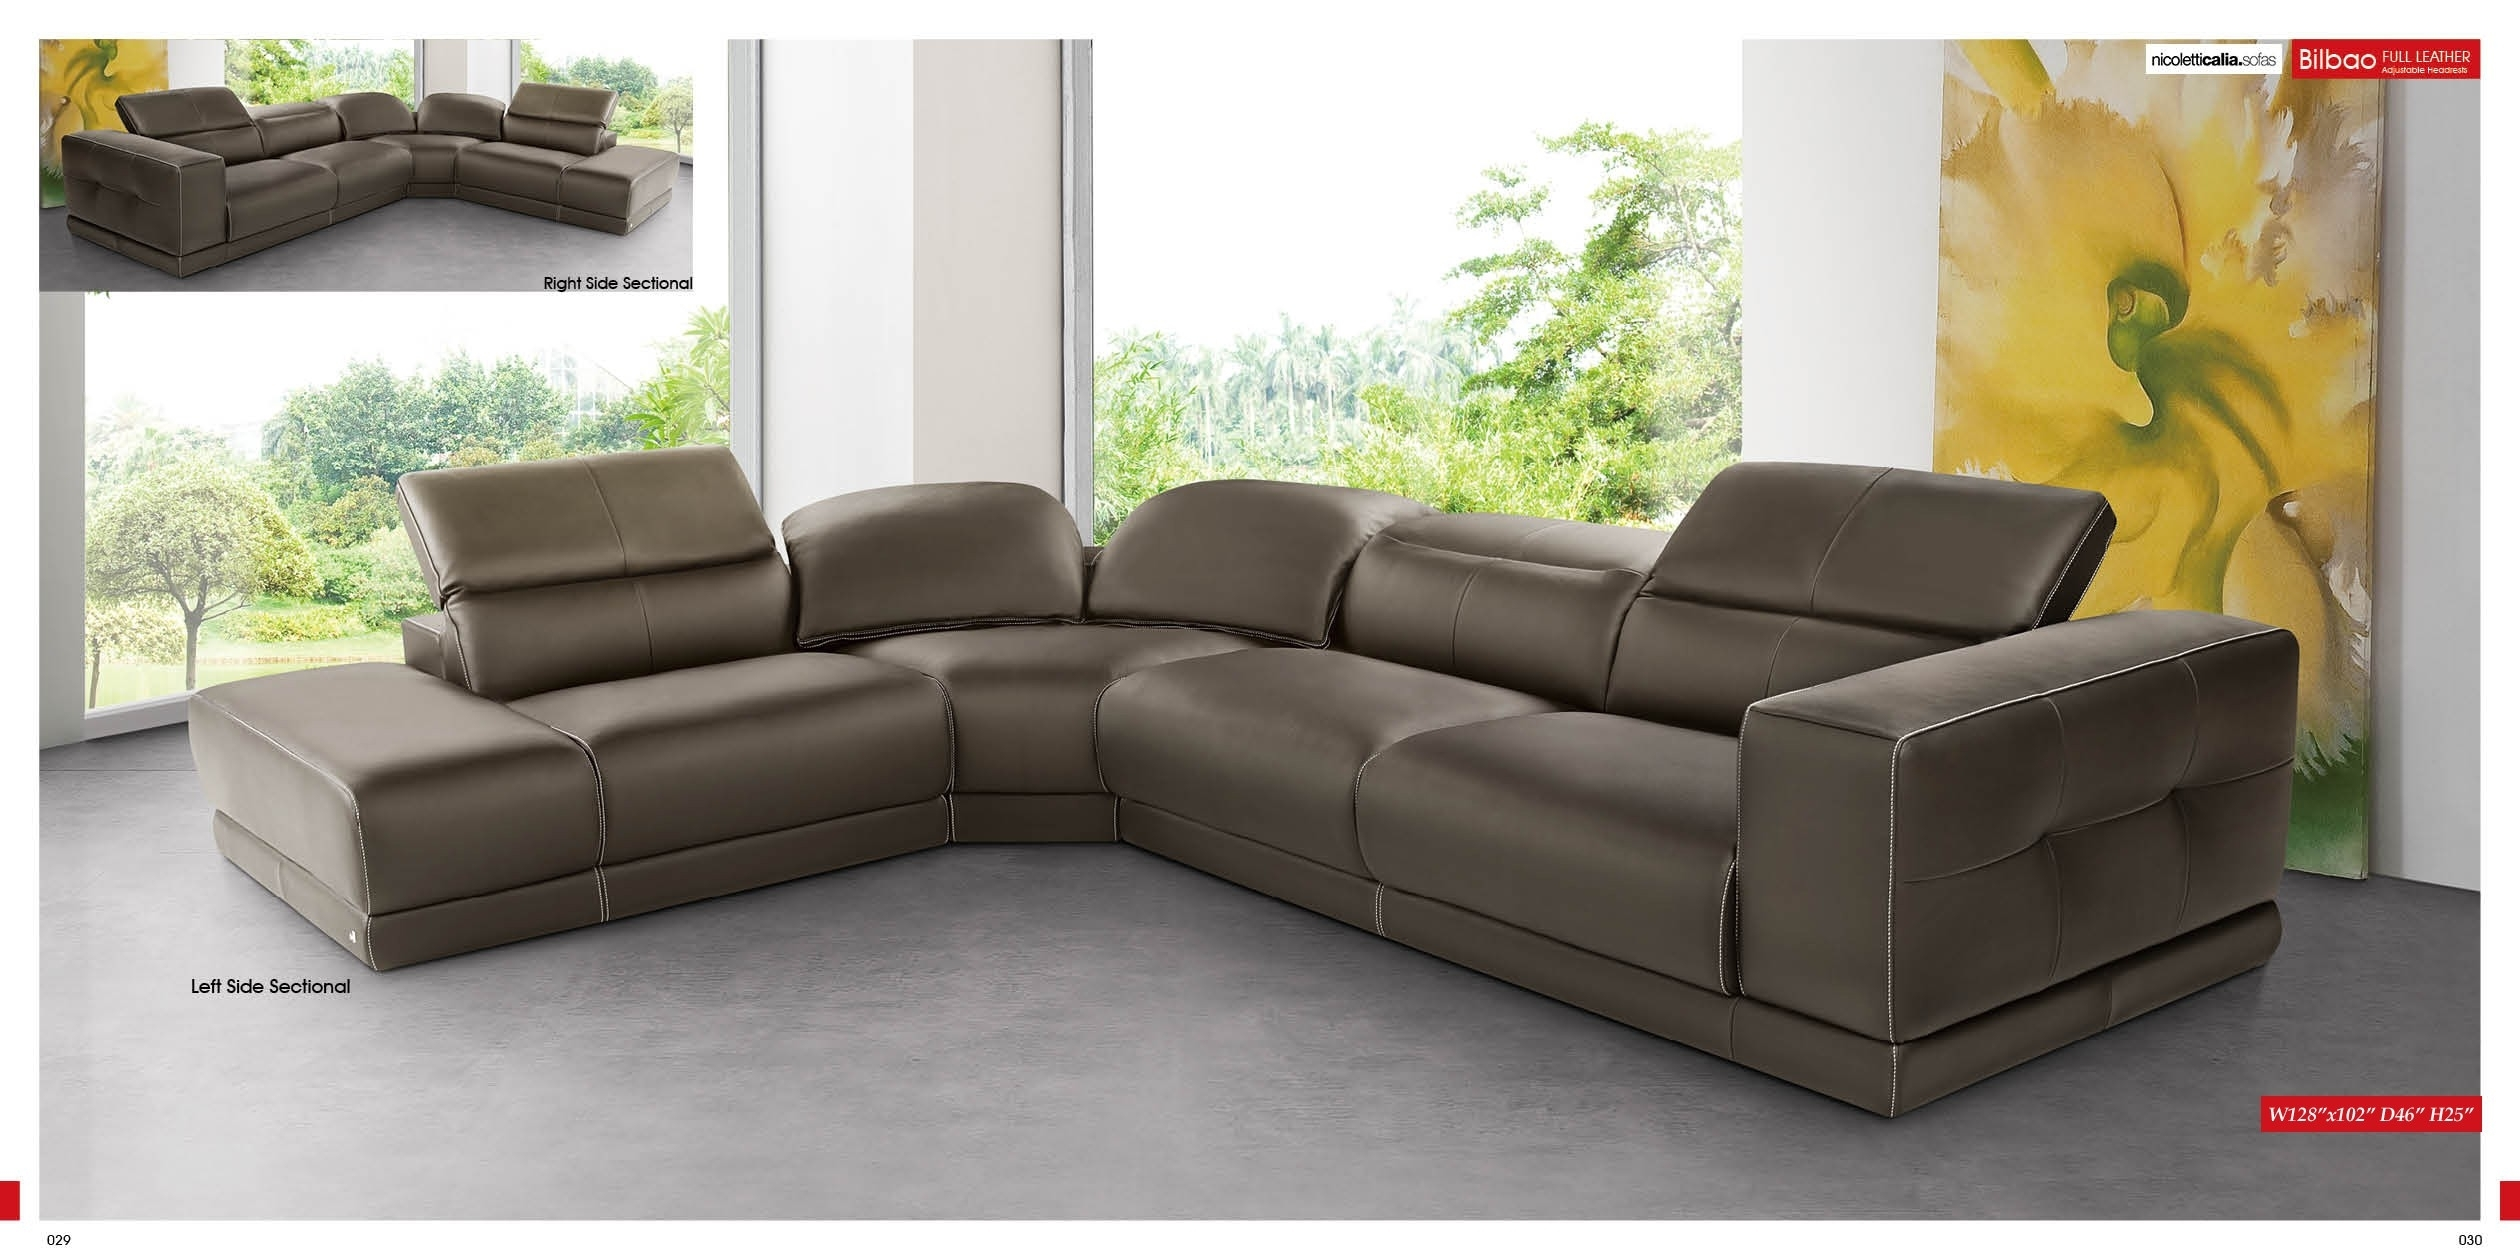 Furniture : Sectional Sofa 120 Sectional Couch Guelph Recliner 3 Inside 110X110 Sectional Sofas (View 10 of 10)